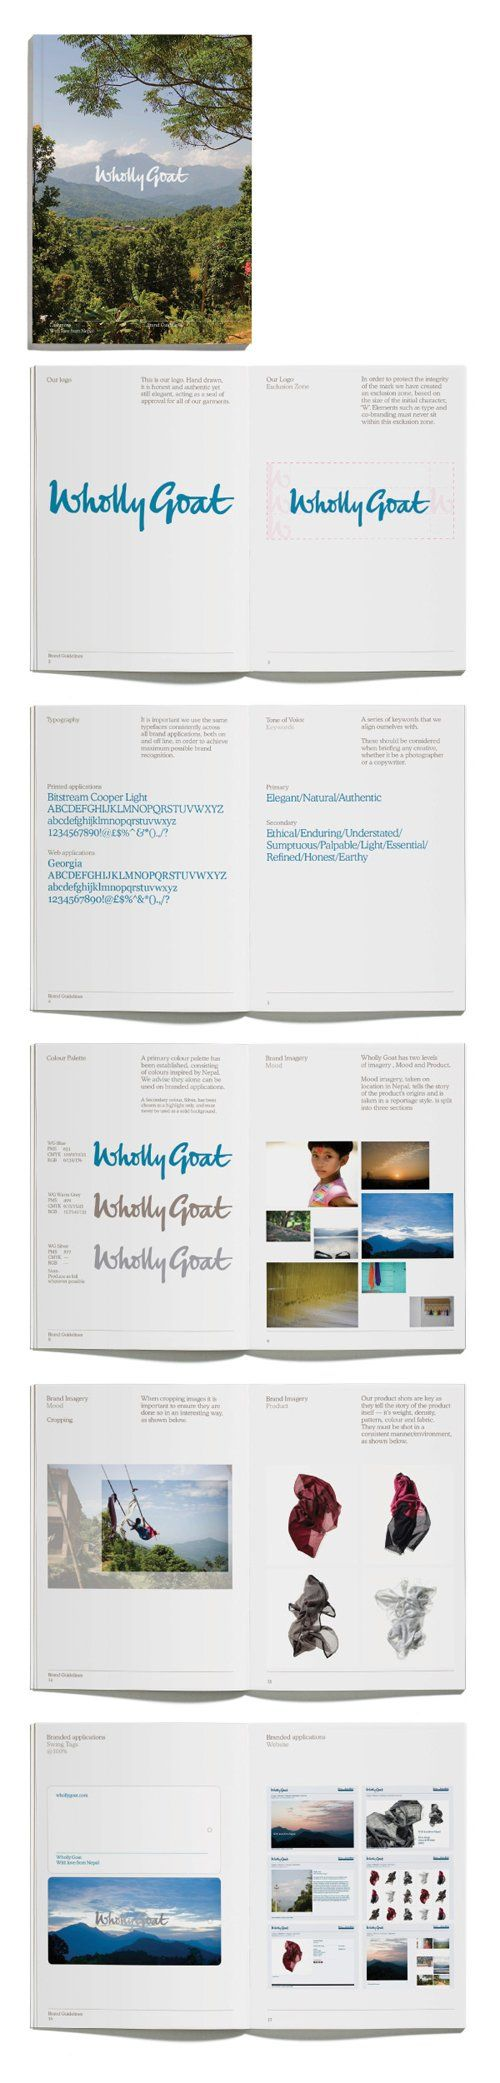 Wholly Goat Brand Guidelines